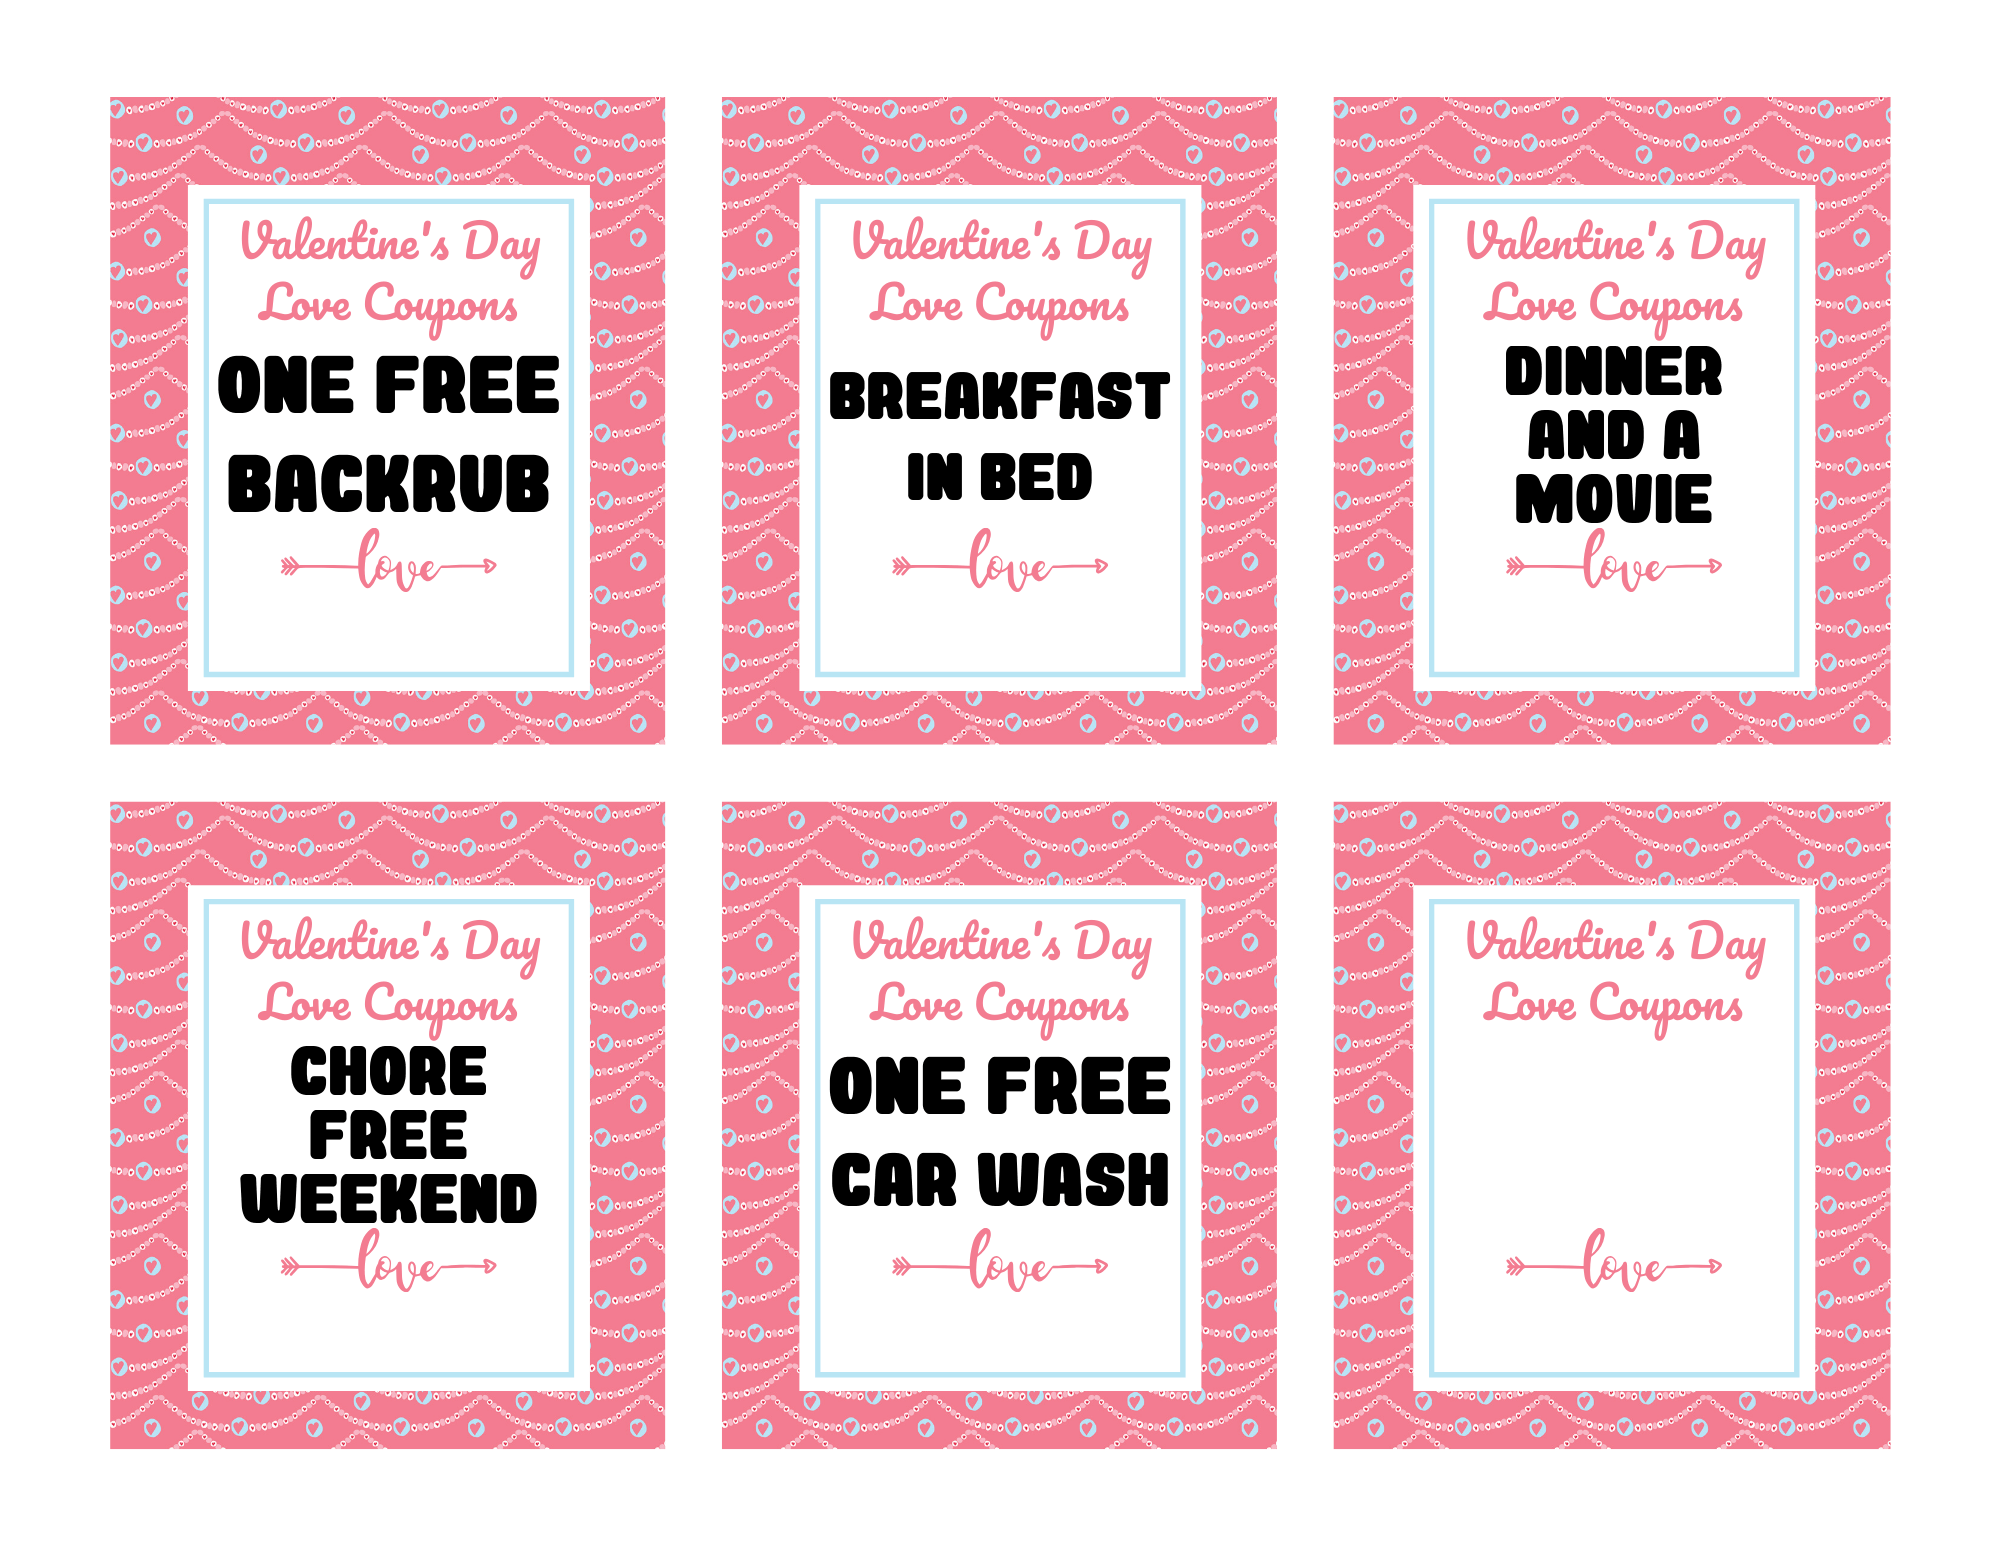 Valentines Day Love Coupons - Free Printable Download